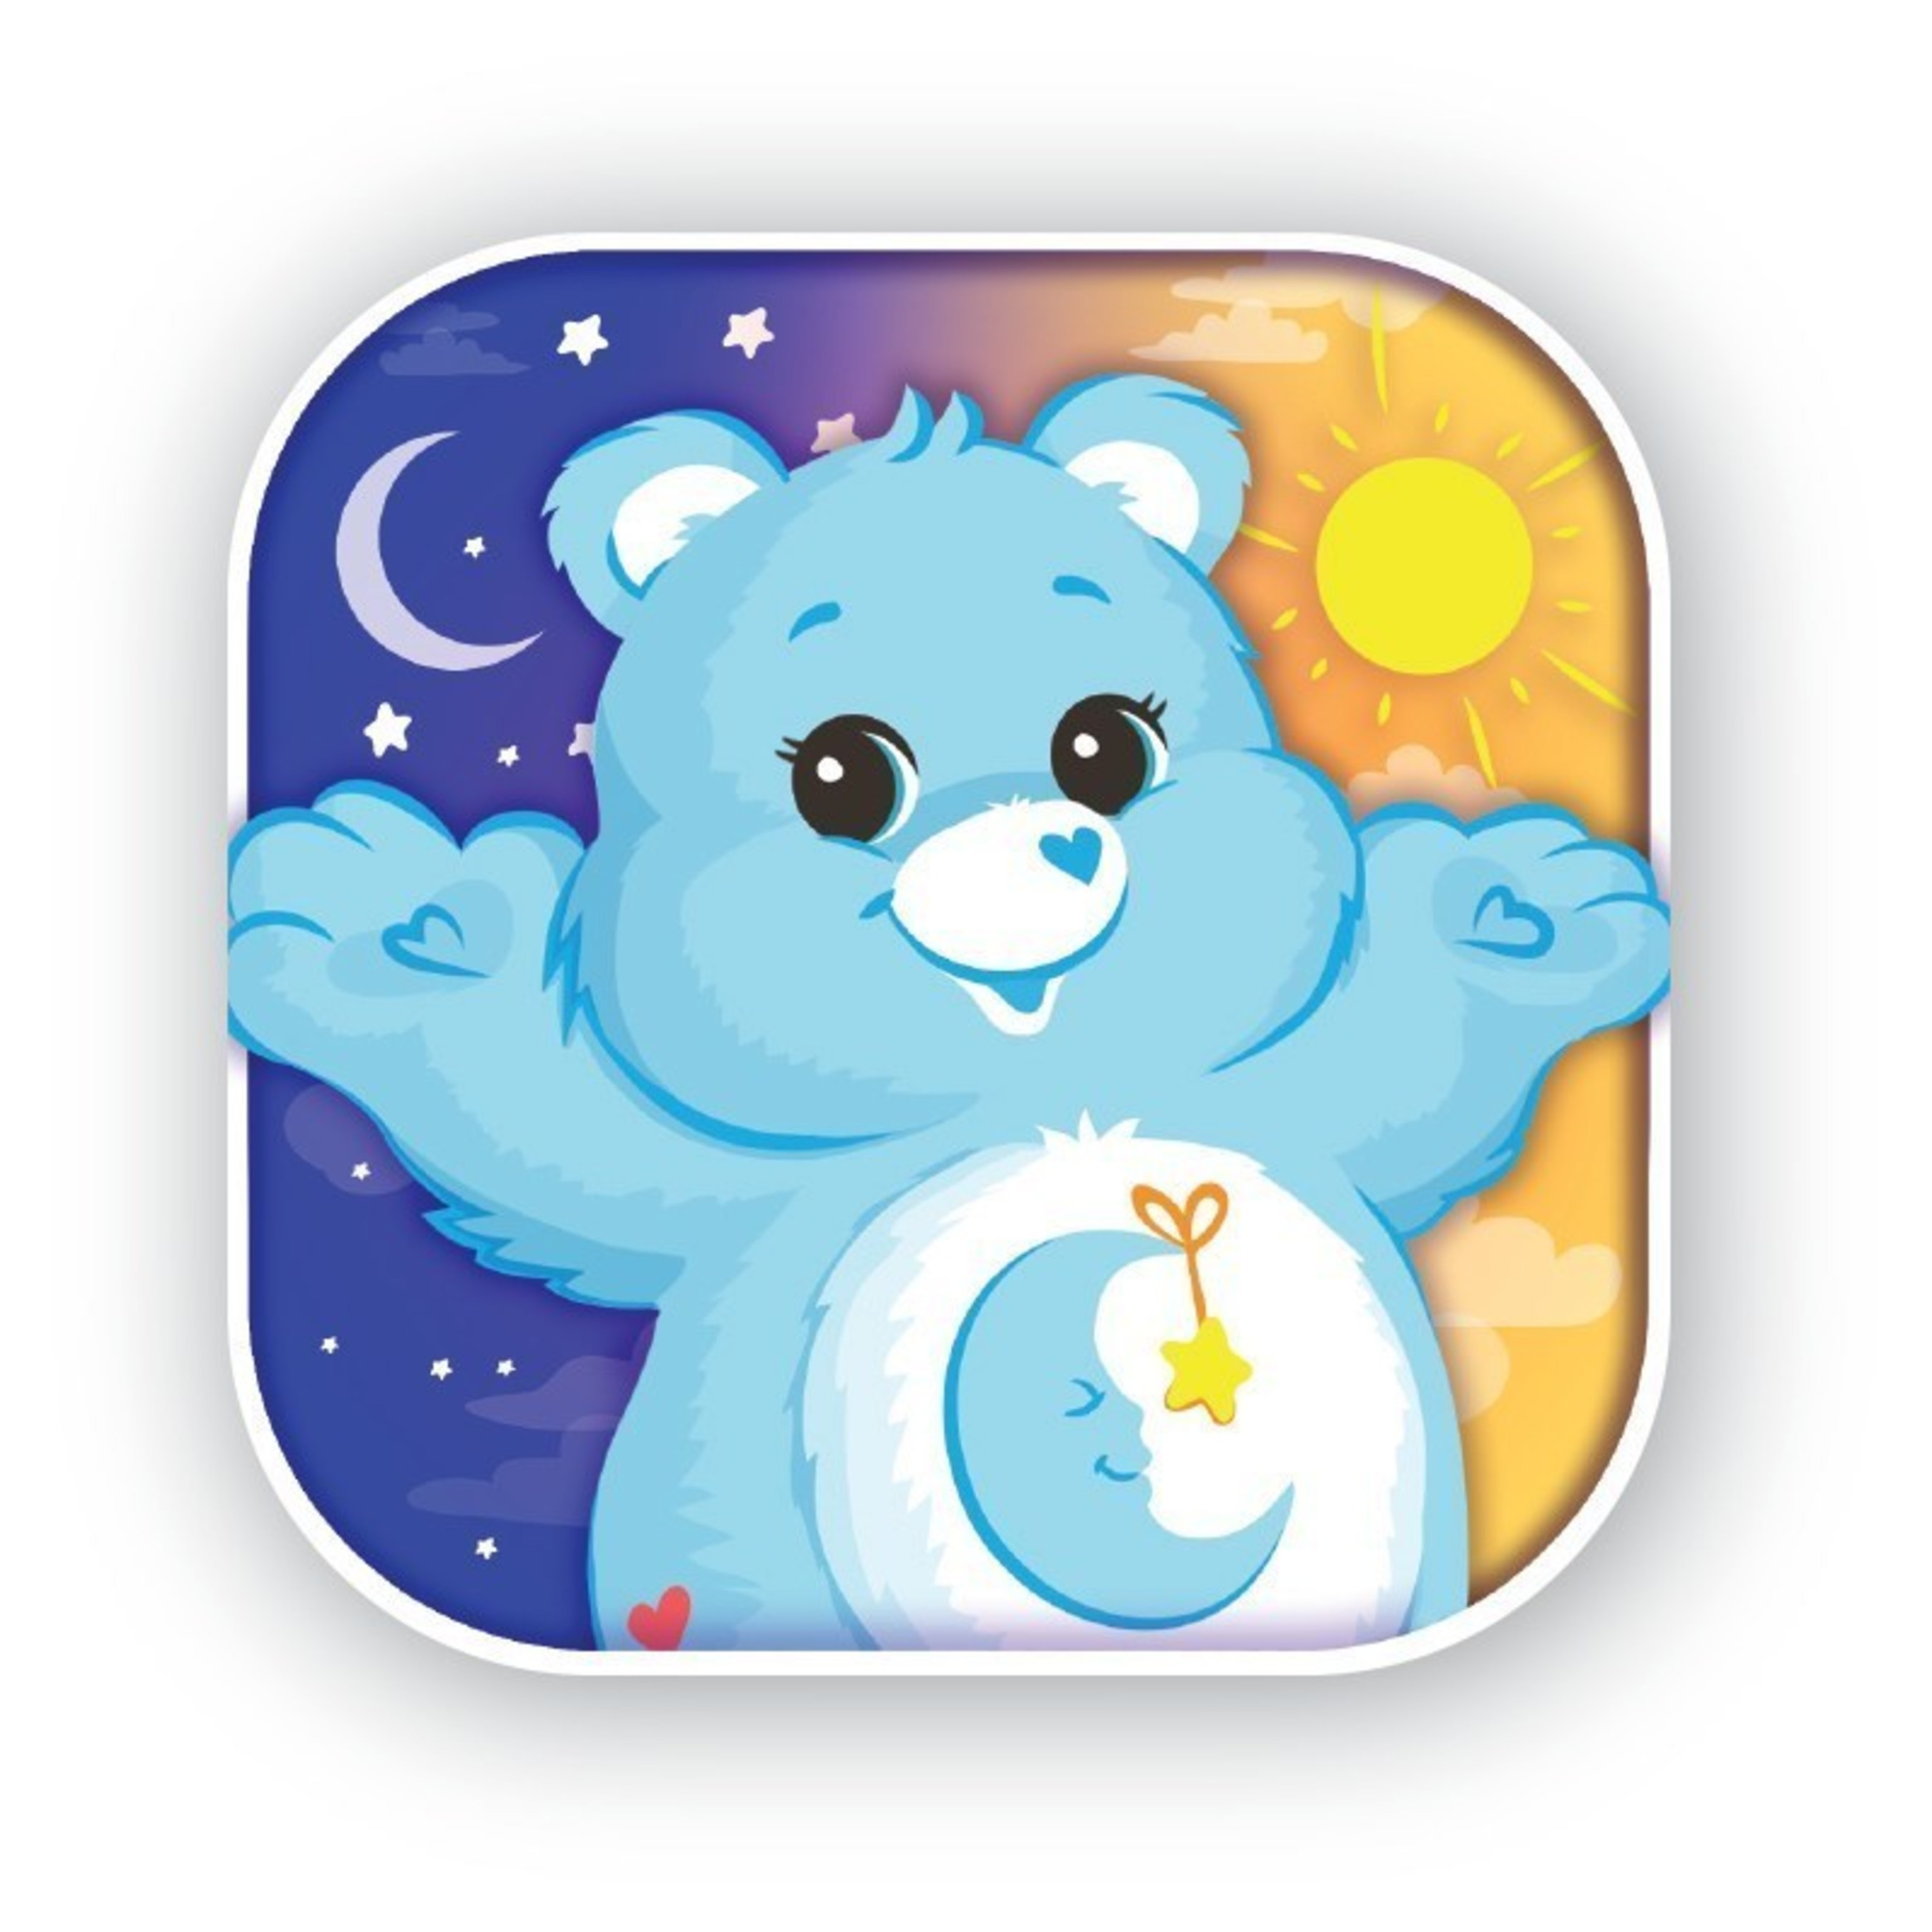 Playdate Digital To Launch Care Bears Entertainment And Educational